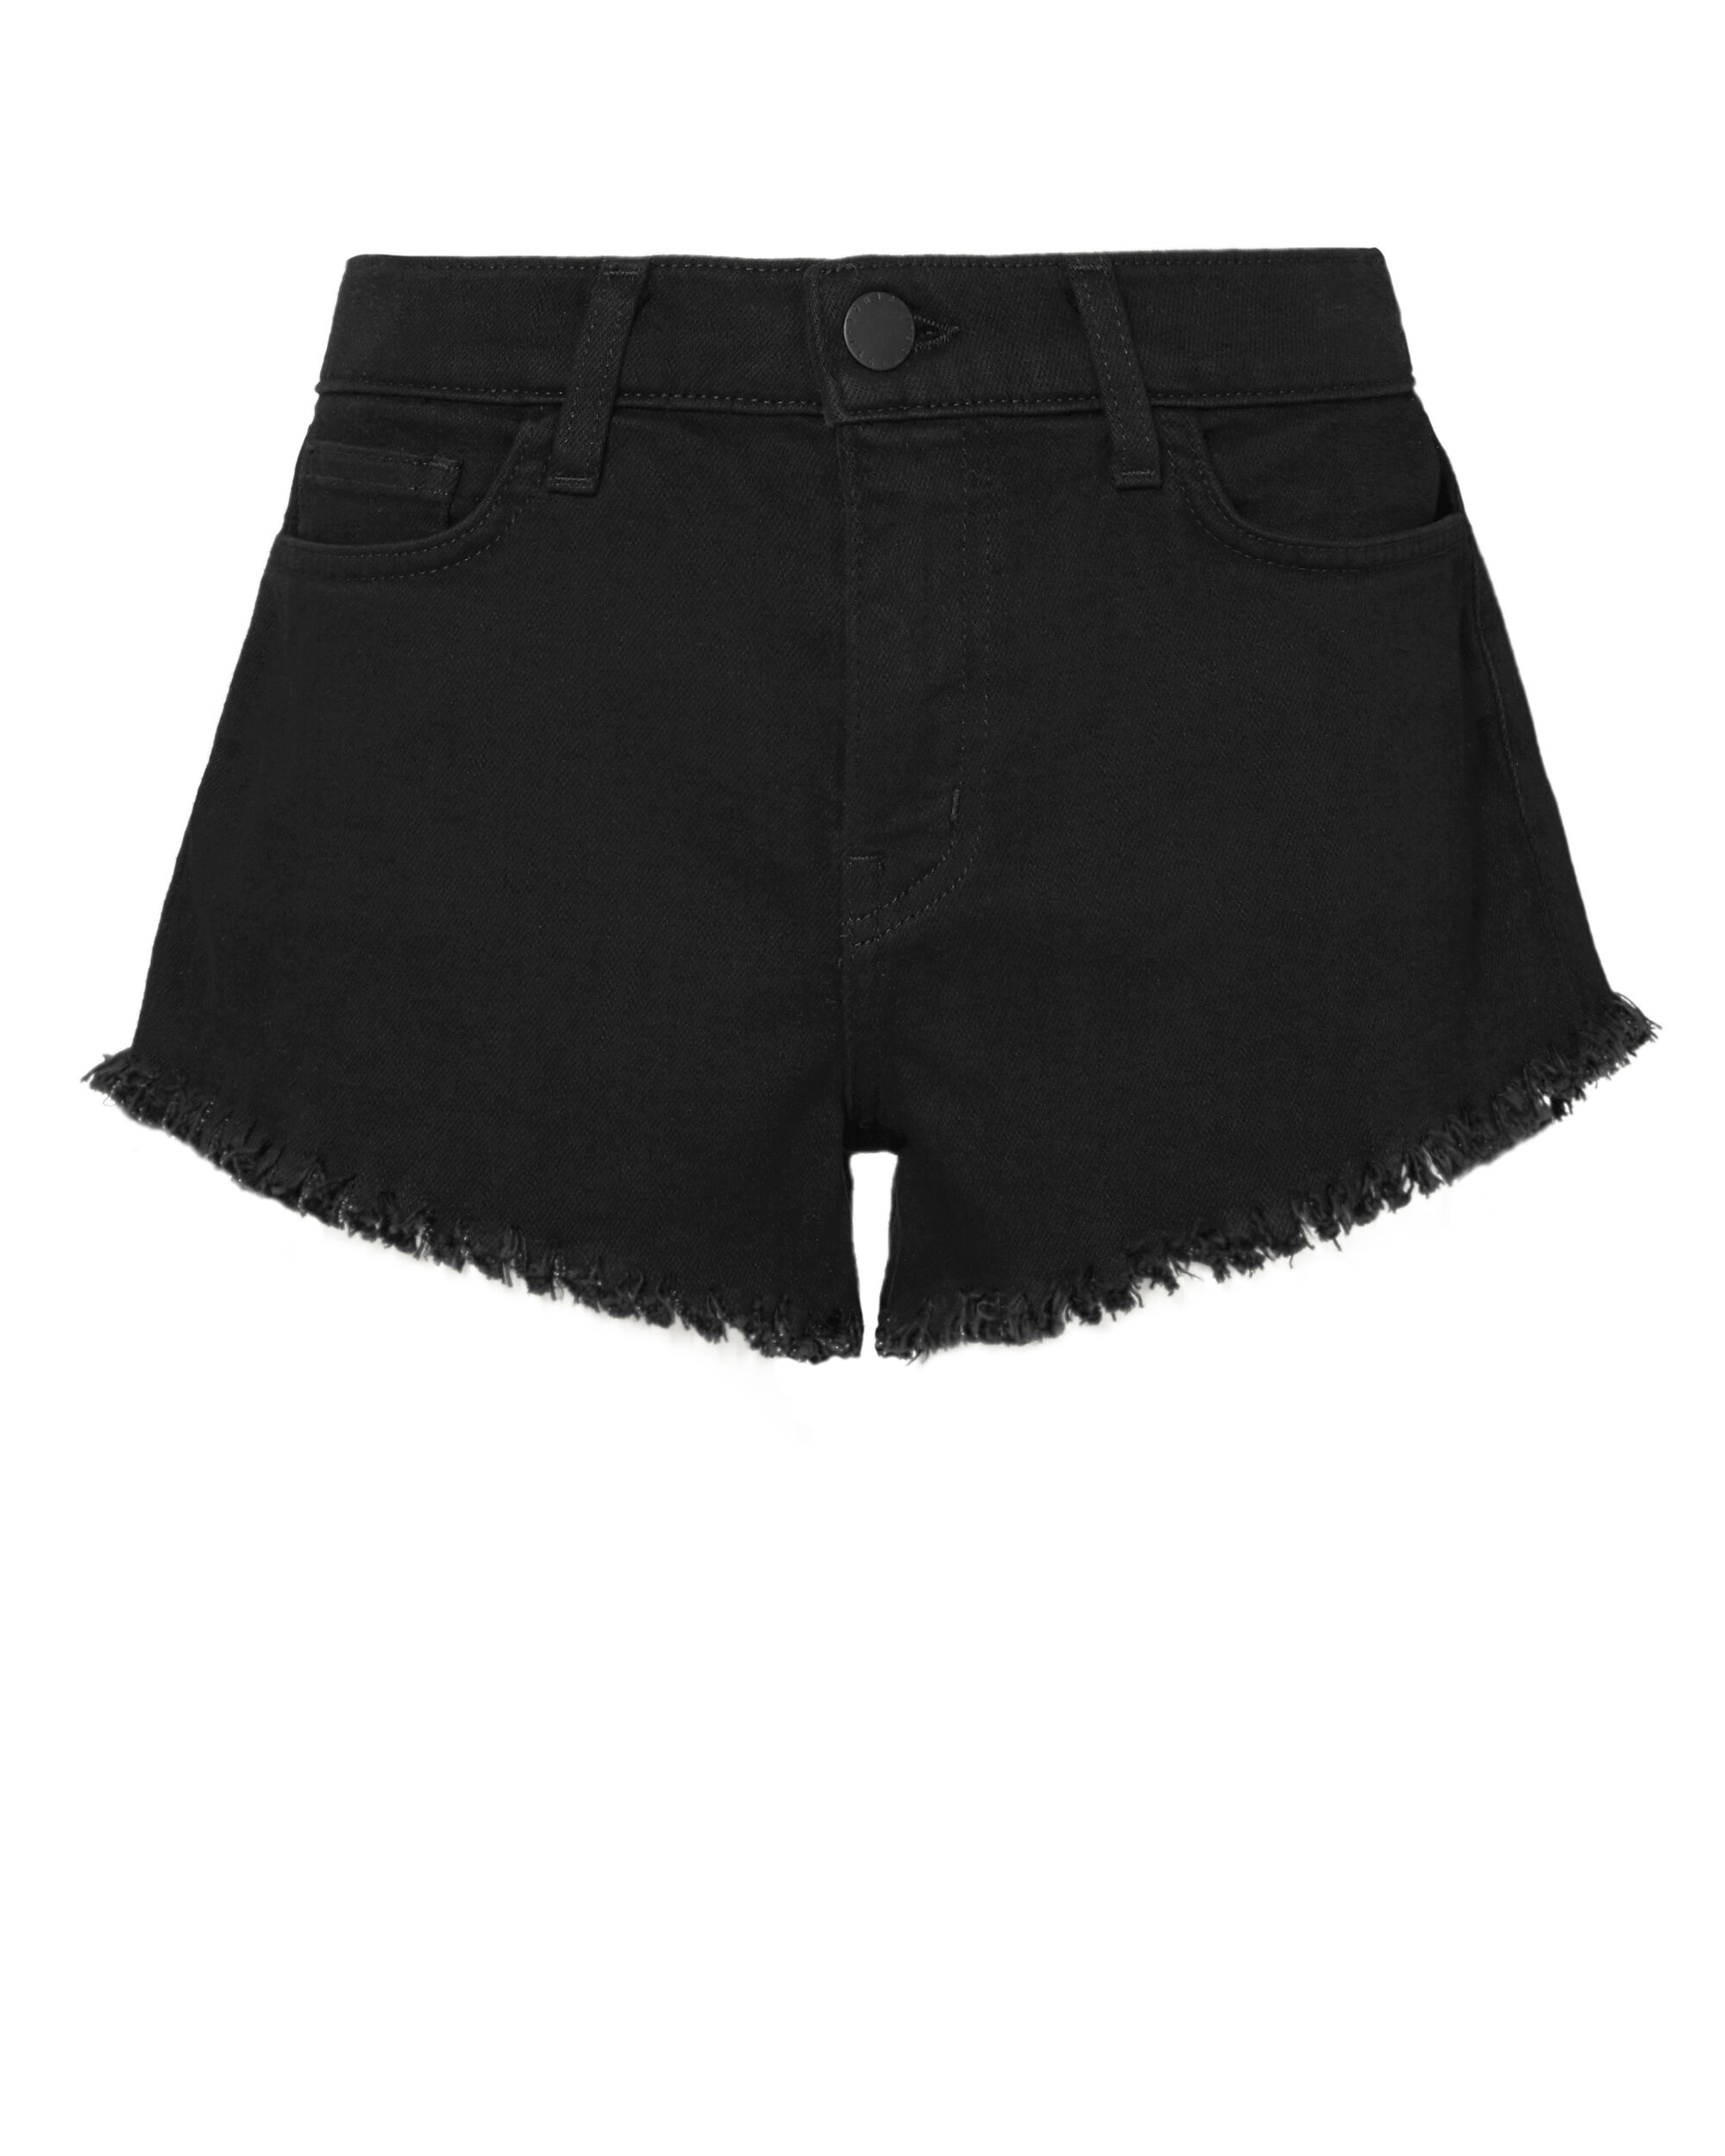 Zoe Perfect Black Shorts, BLACK, hi-res